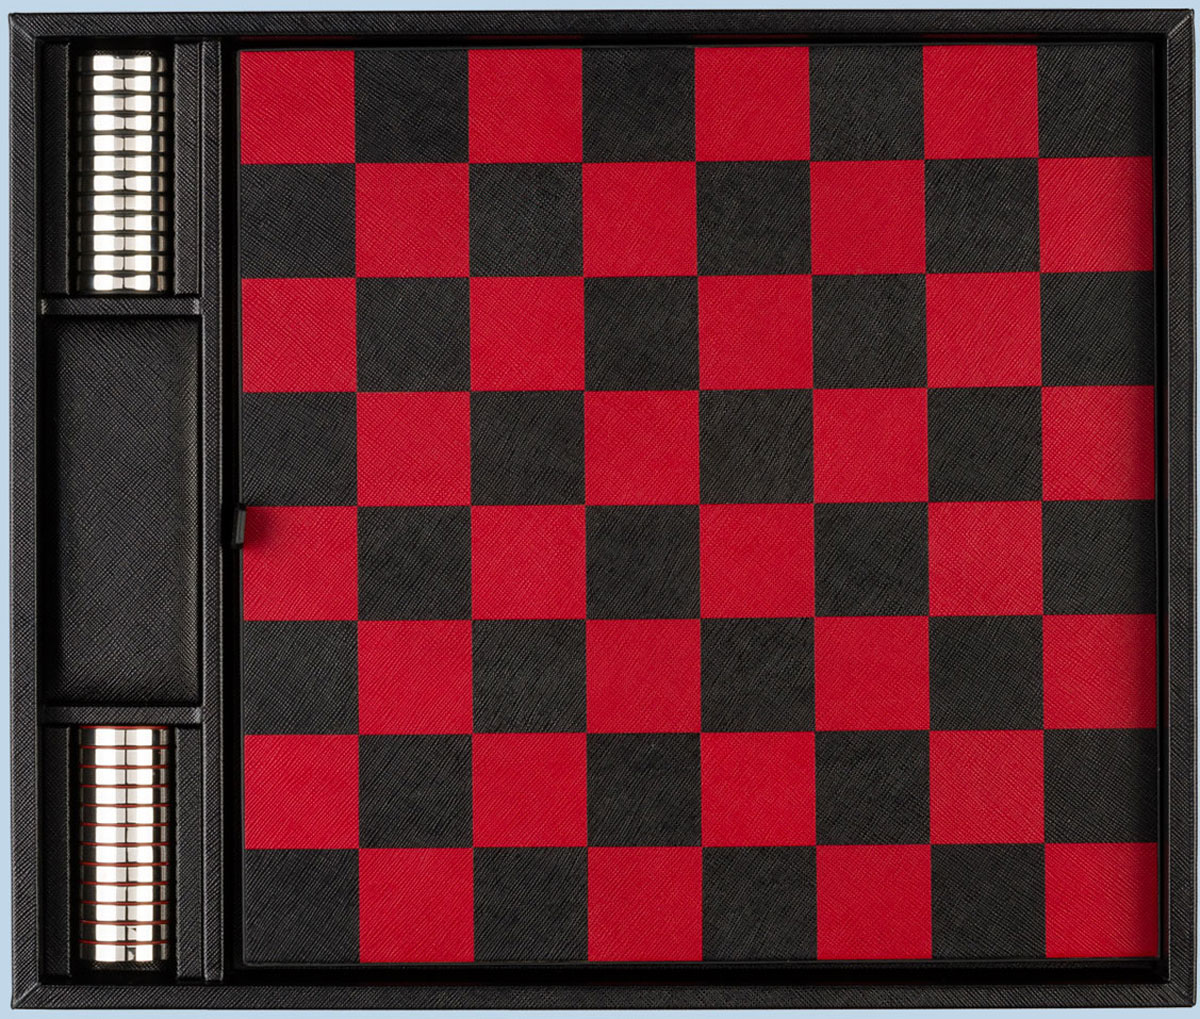 Prada Gifts Now Boasts Luxury Board Games